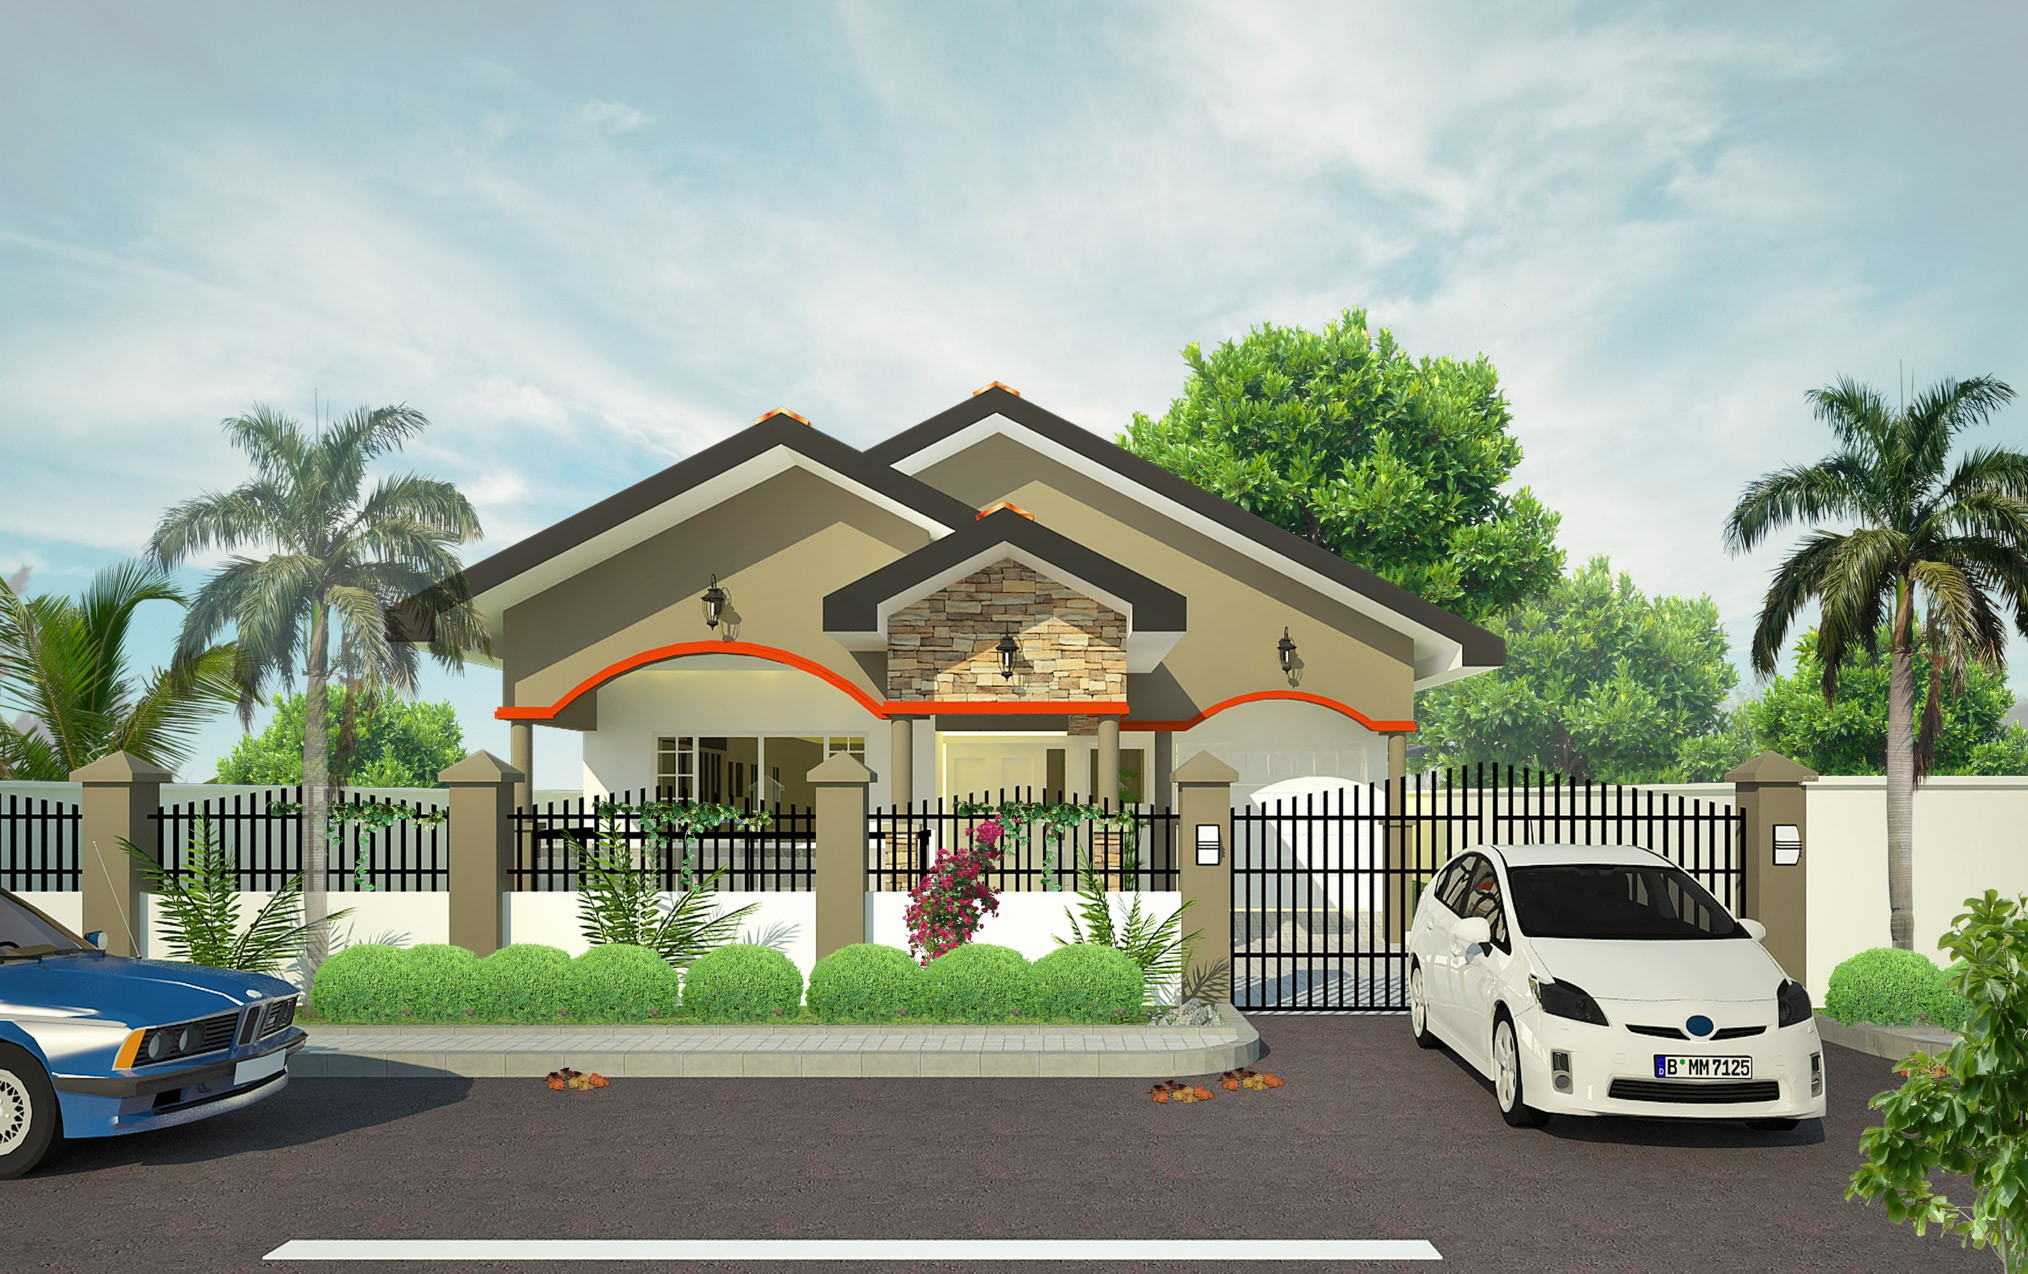 THE MARQUES – 3 Bedroom Bungalow with Garage